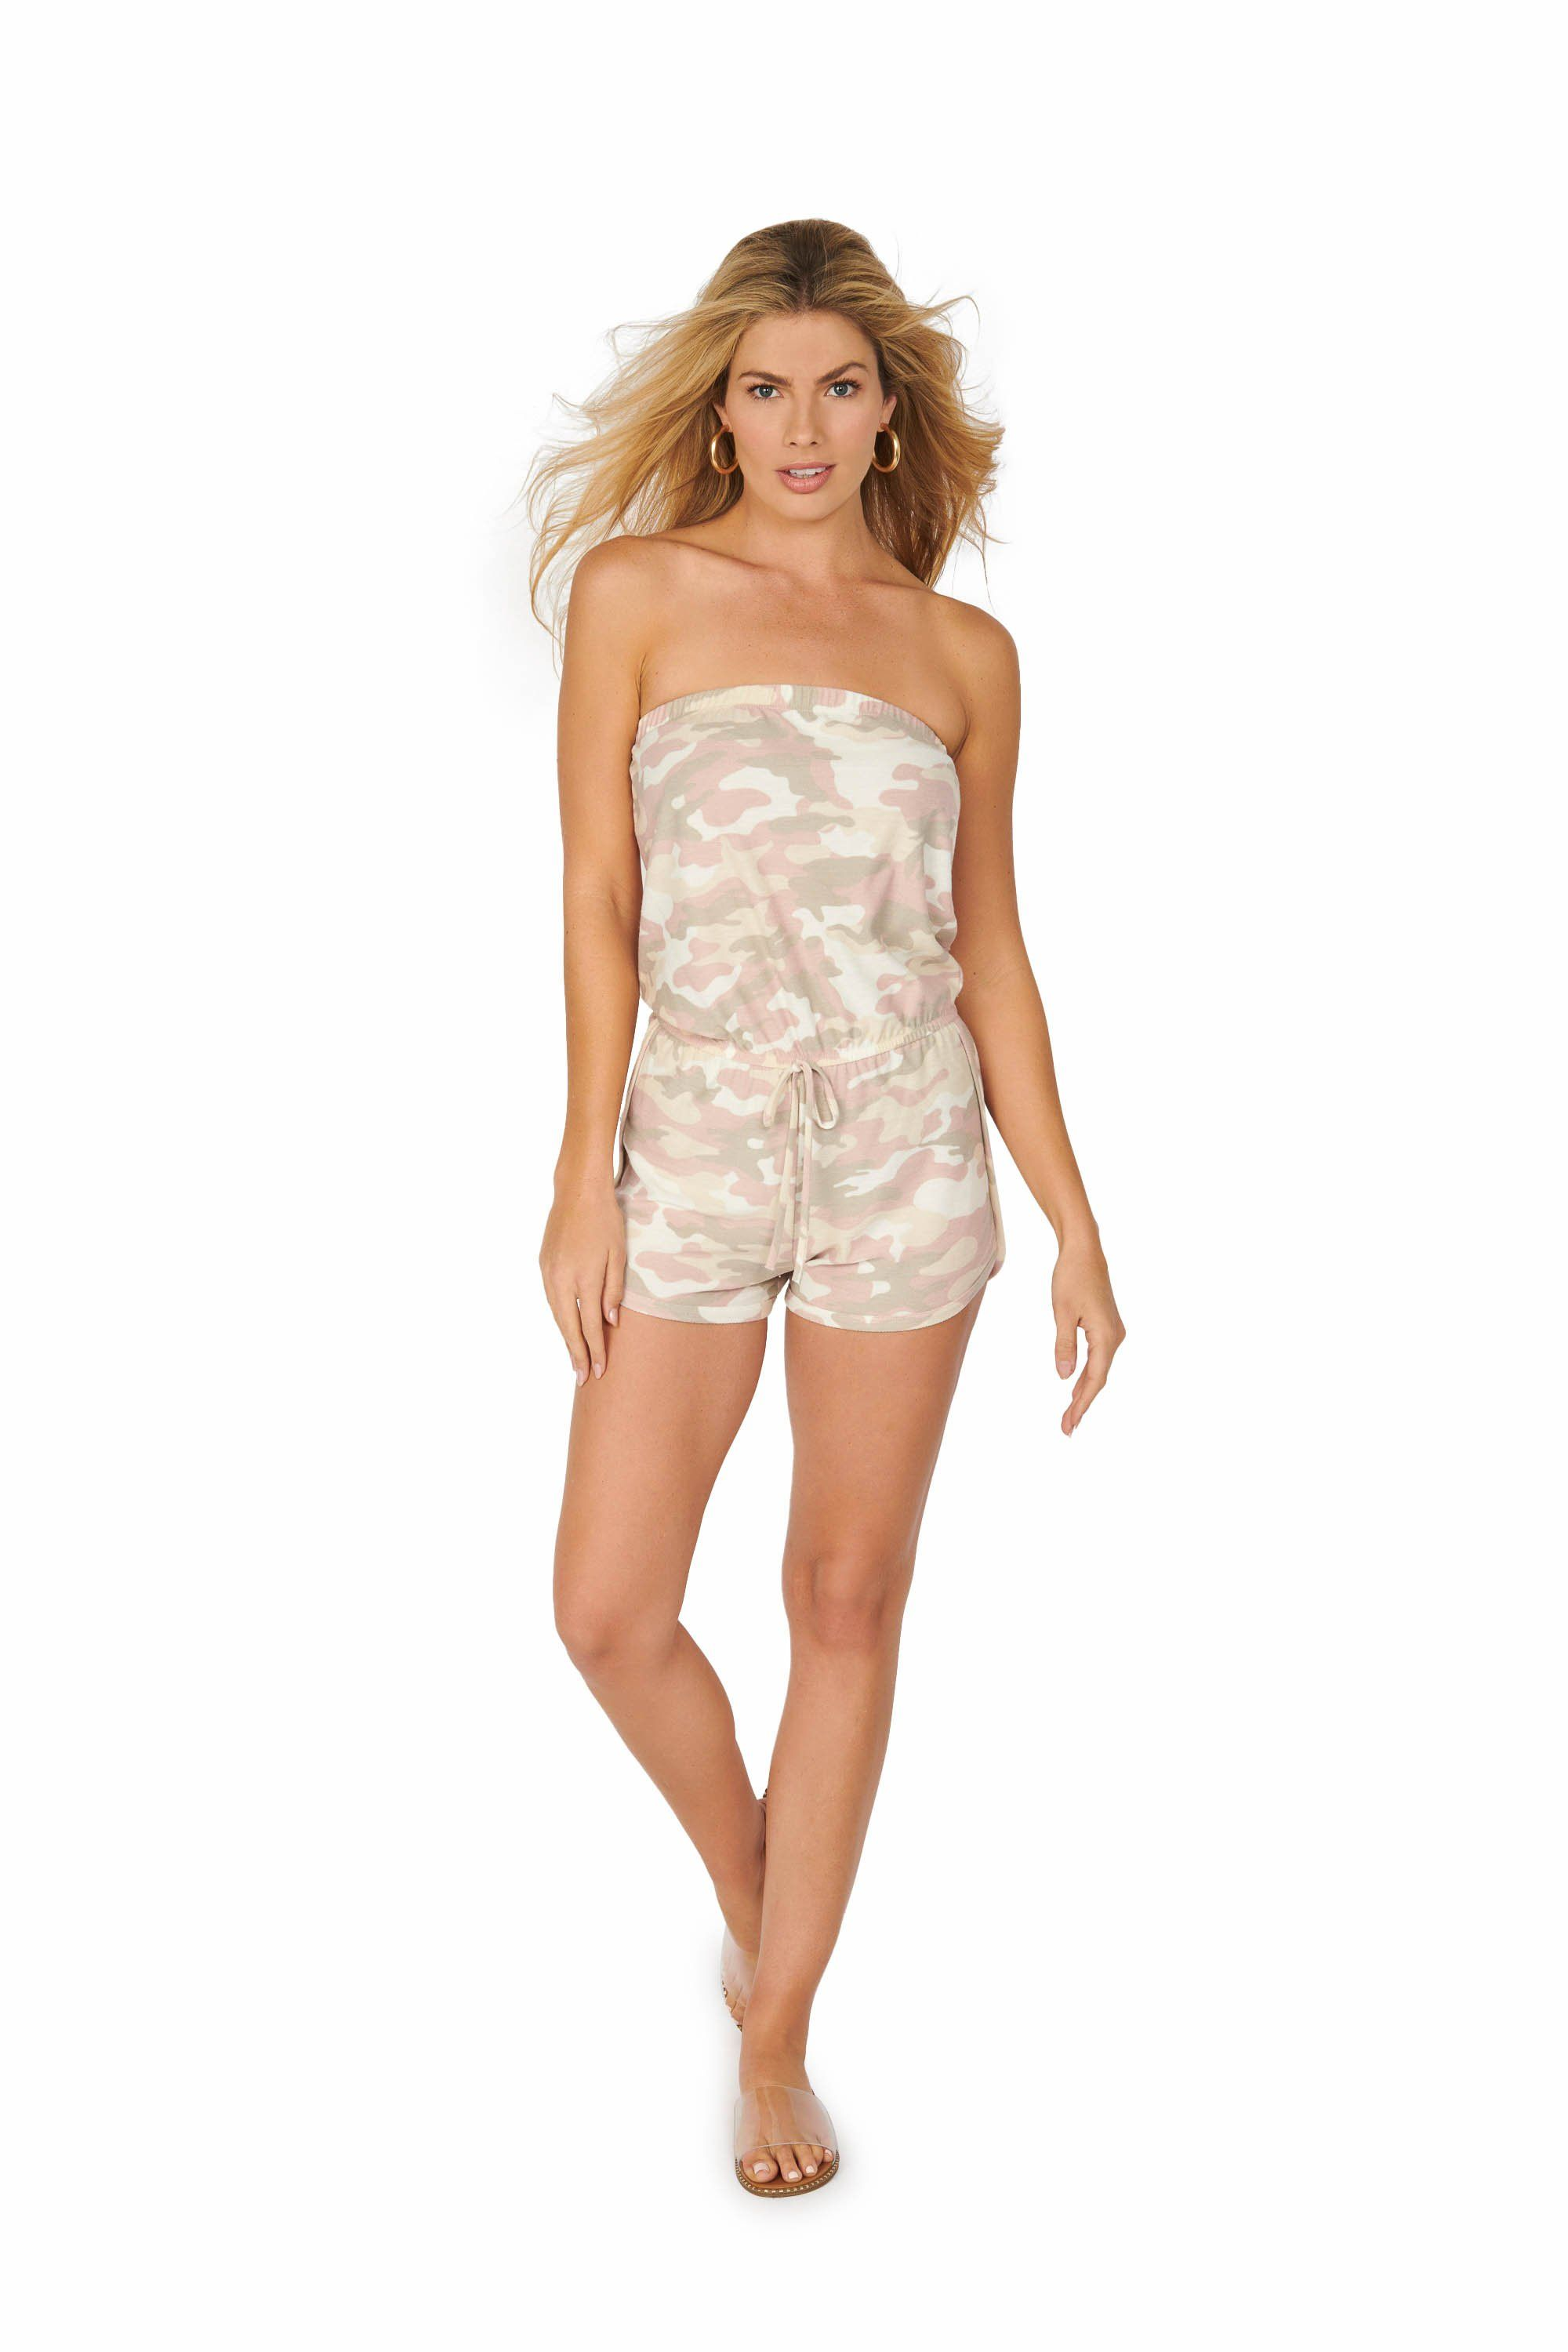 Camouflage Tube Top Light Pink Romper Rompers & Jumpers HYPEACH BOUTIQUE